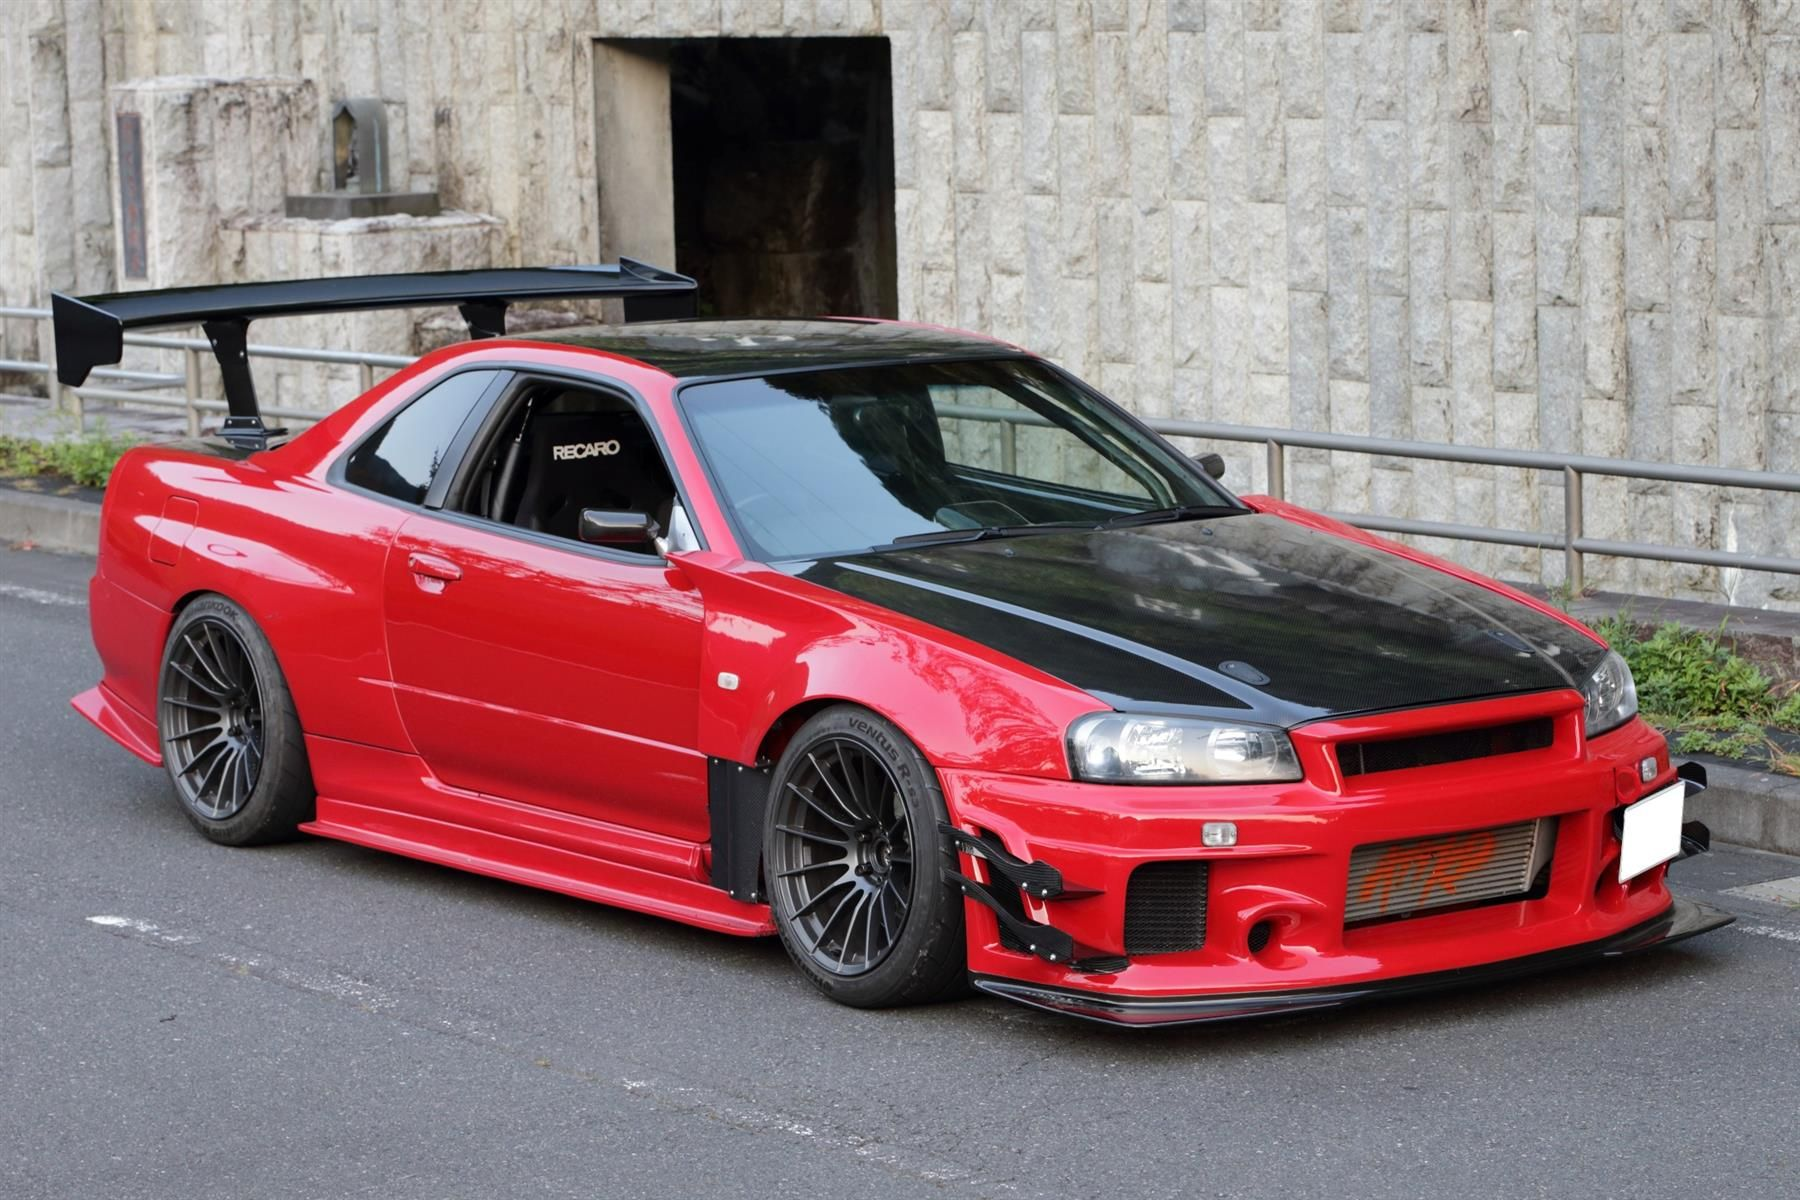 used 1999 nissan skyline r34 for sale in essex. Black Bedroom Furniture Sets. Home Design Ideas